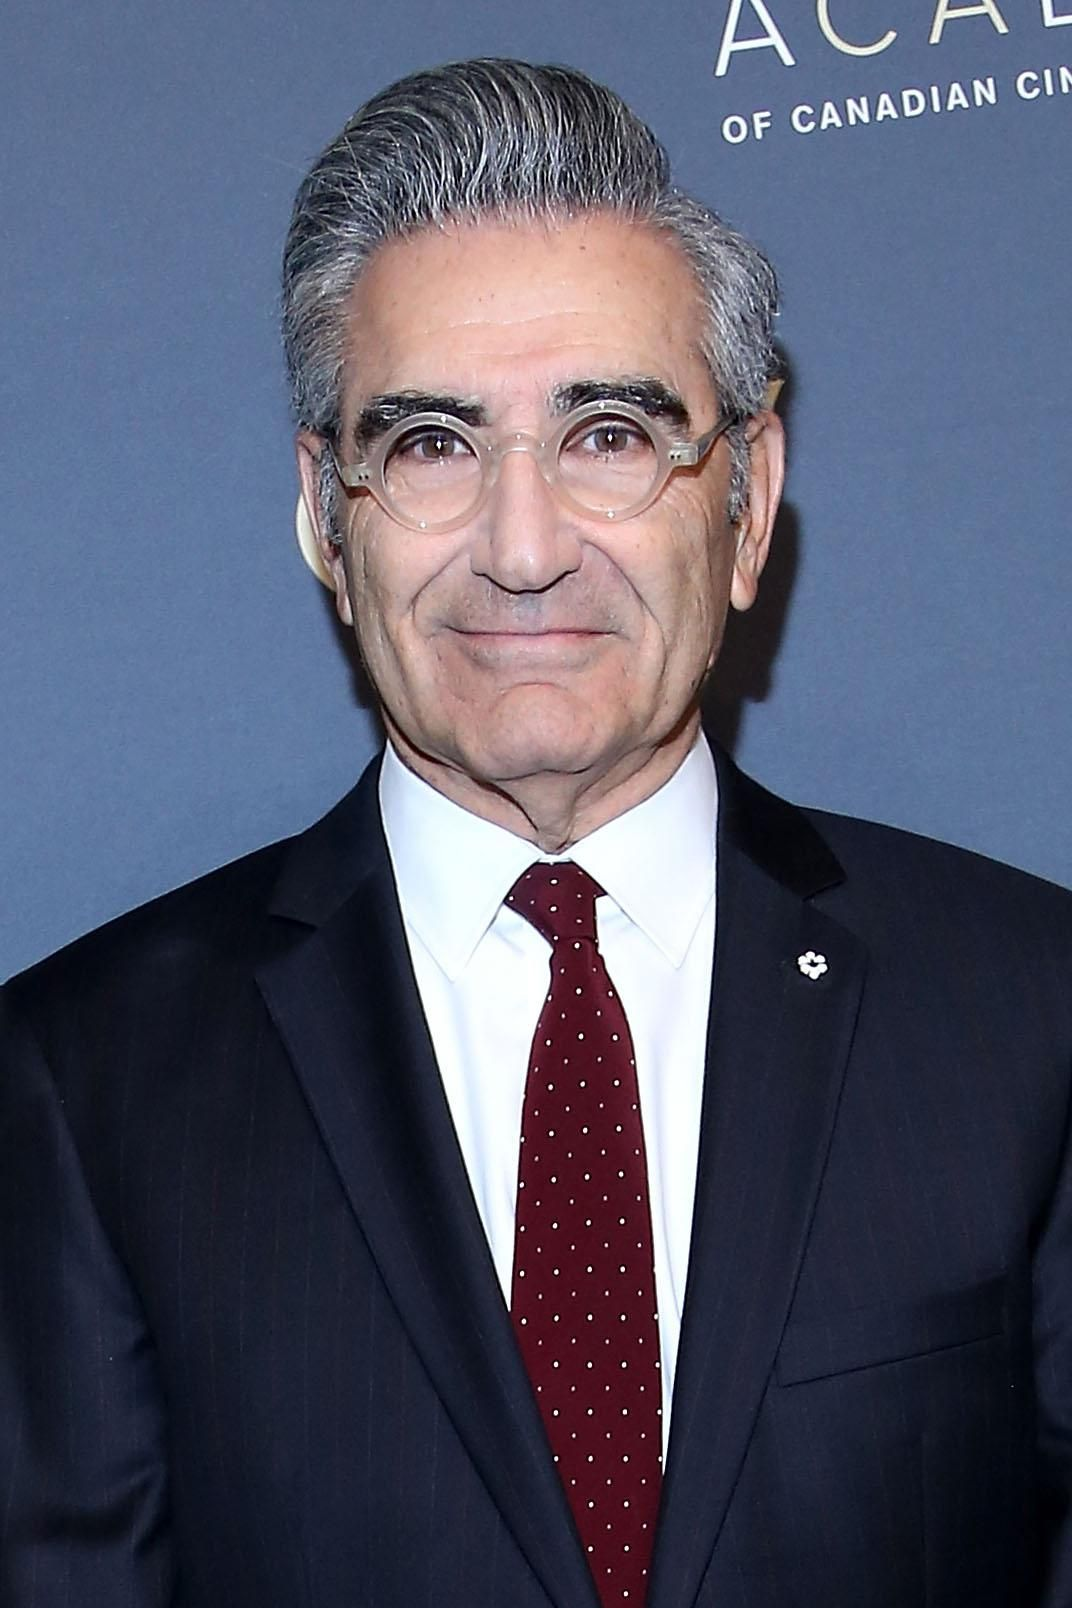 Eugene Levy in a suit and clear glasses